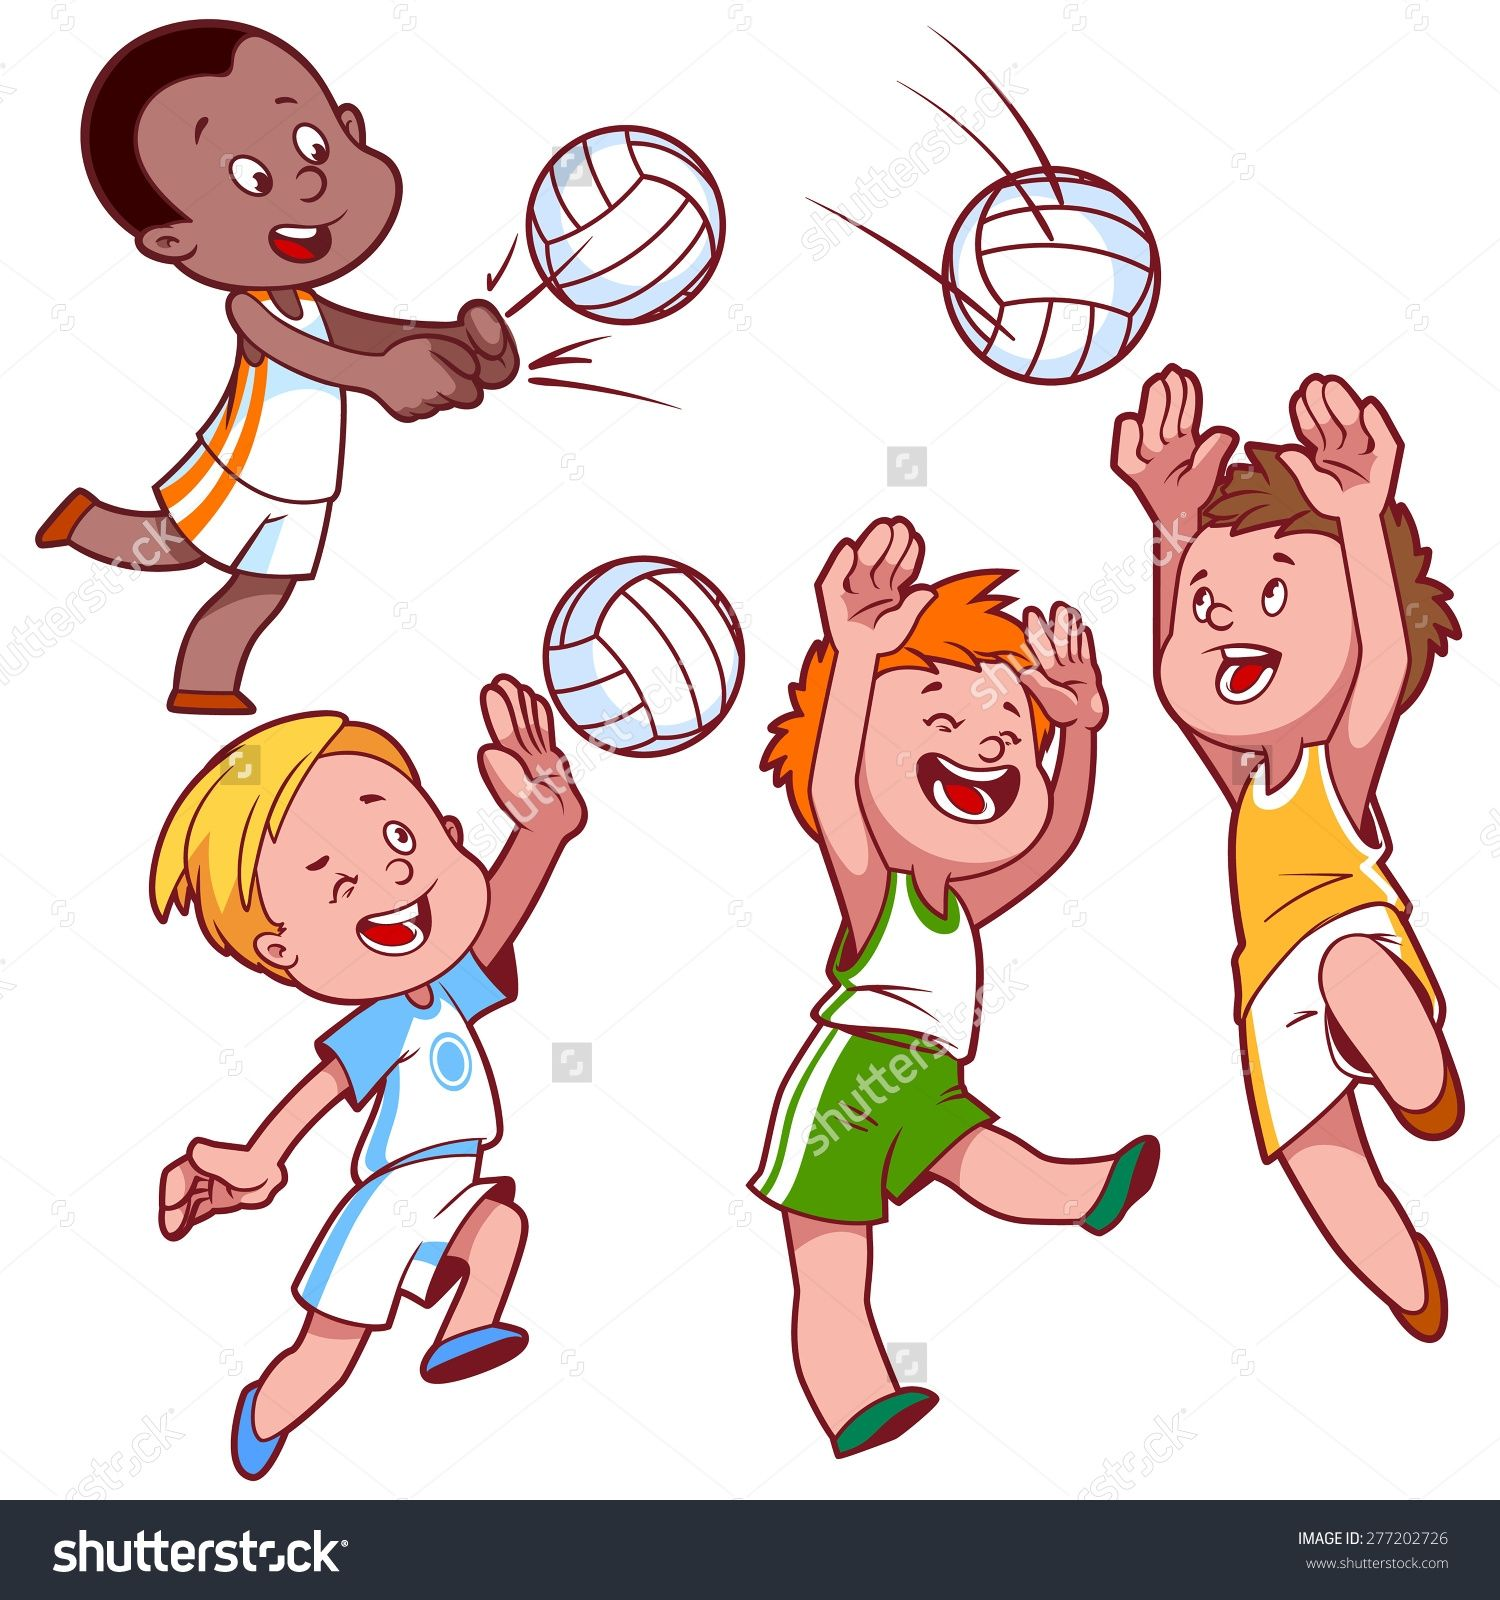 529430863 Stock Vector Cartoon Kids Playing Volleyball Vector Clip Art Illustration On A White Background 277202726 Jpg 1500 Cartoon Kids Kids Clipart Cartoon